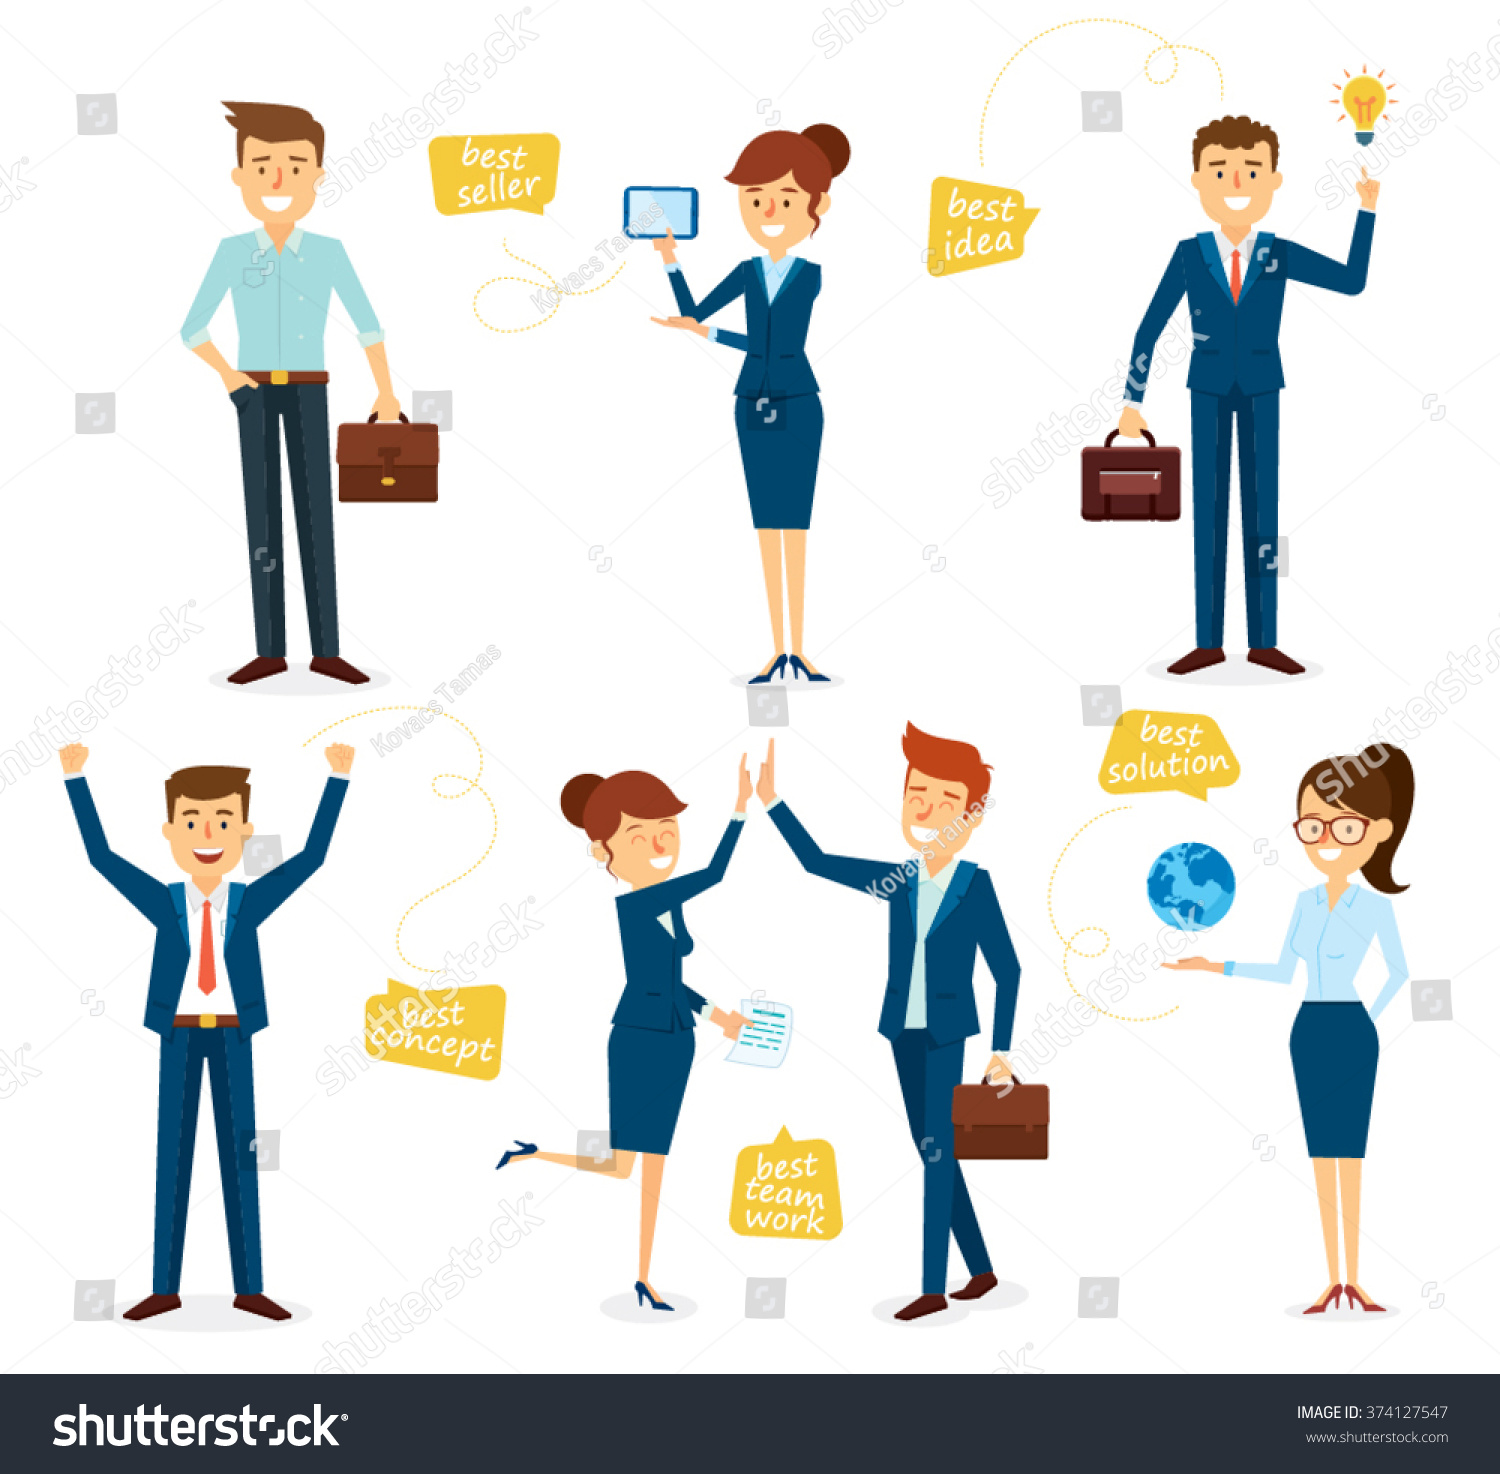 Character Design Kit : Business character design set employees stock vector